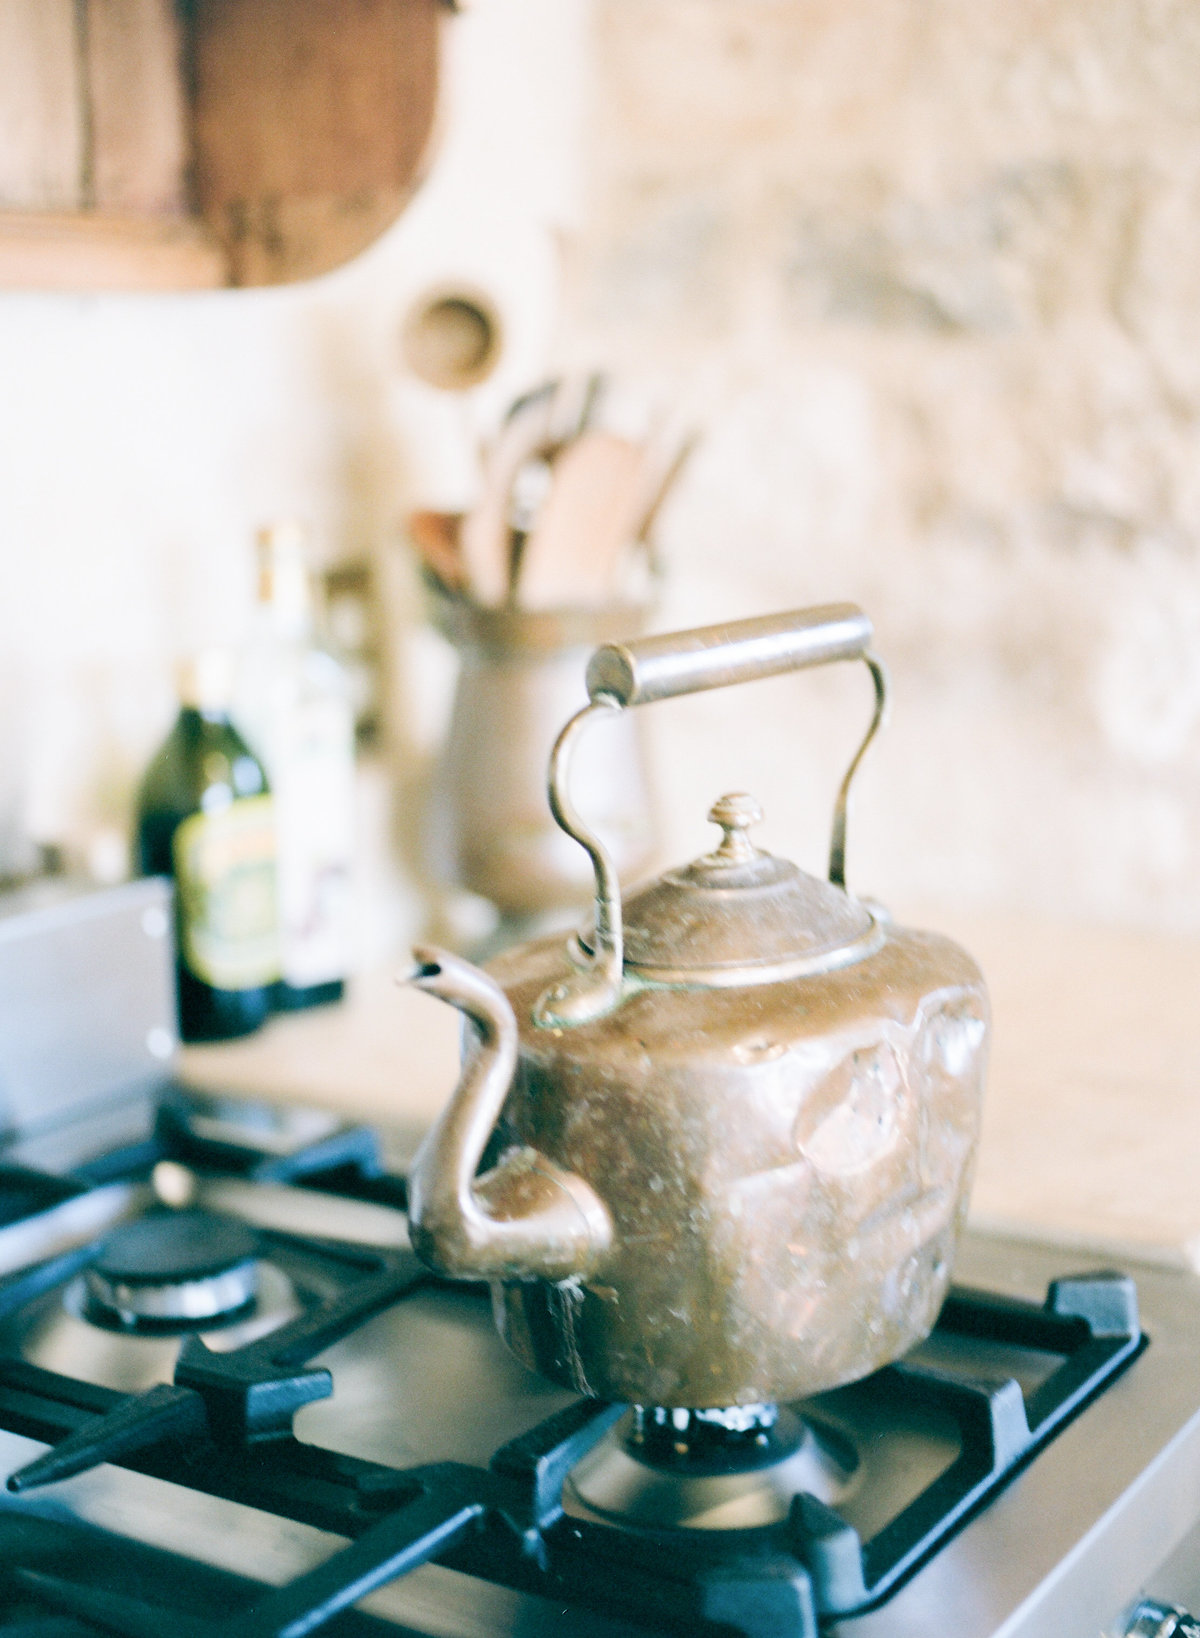 Copper Tea Kettle Fine Art Lifestyle Photography